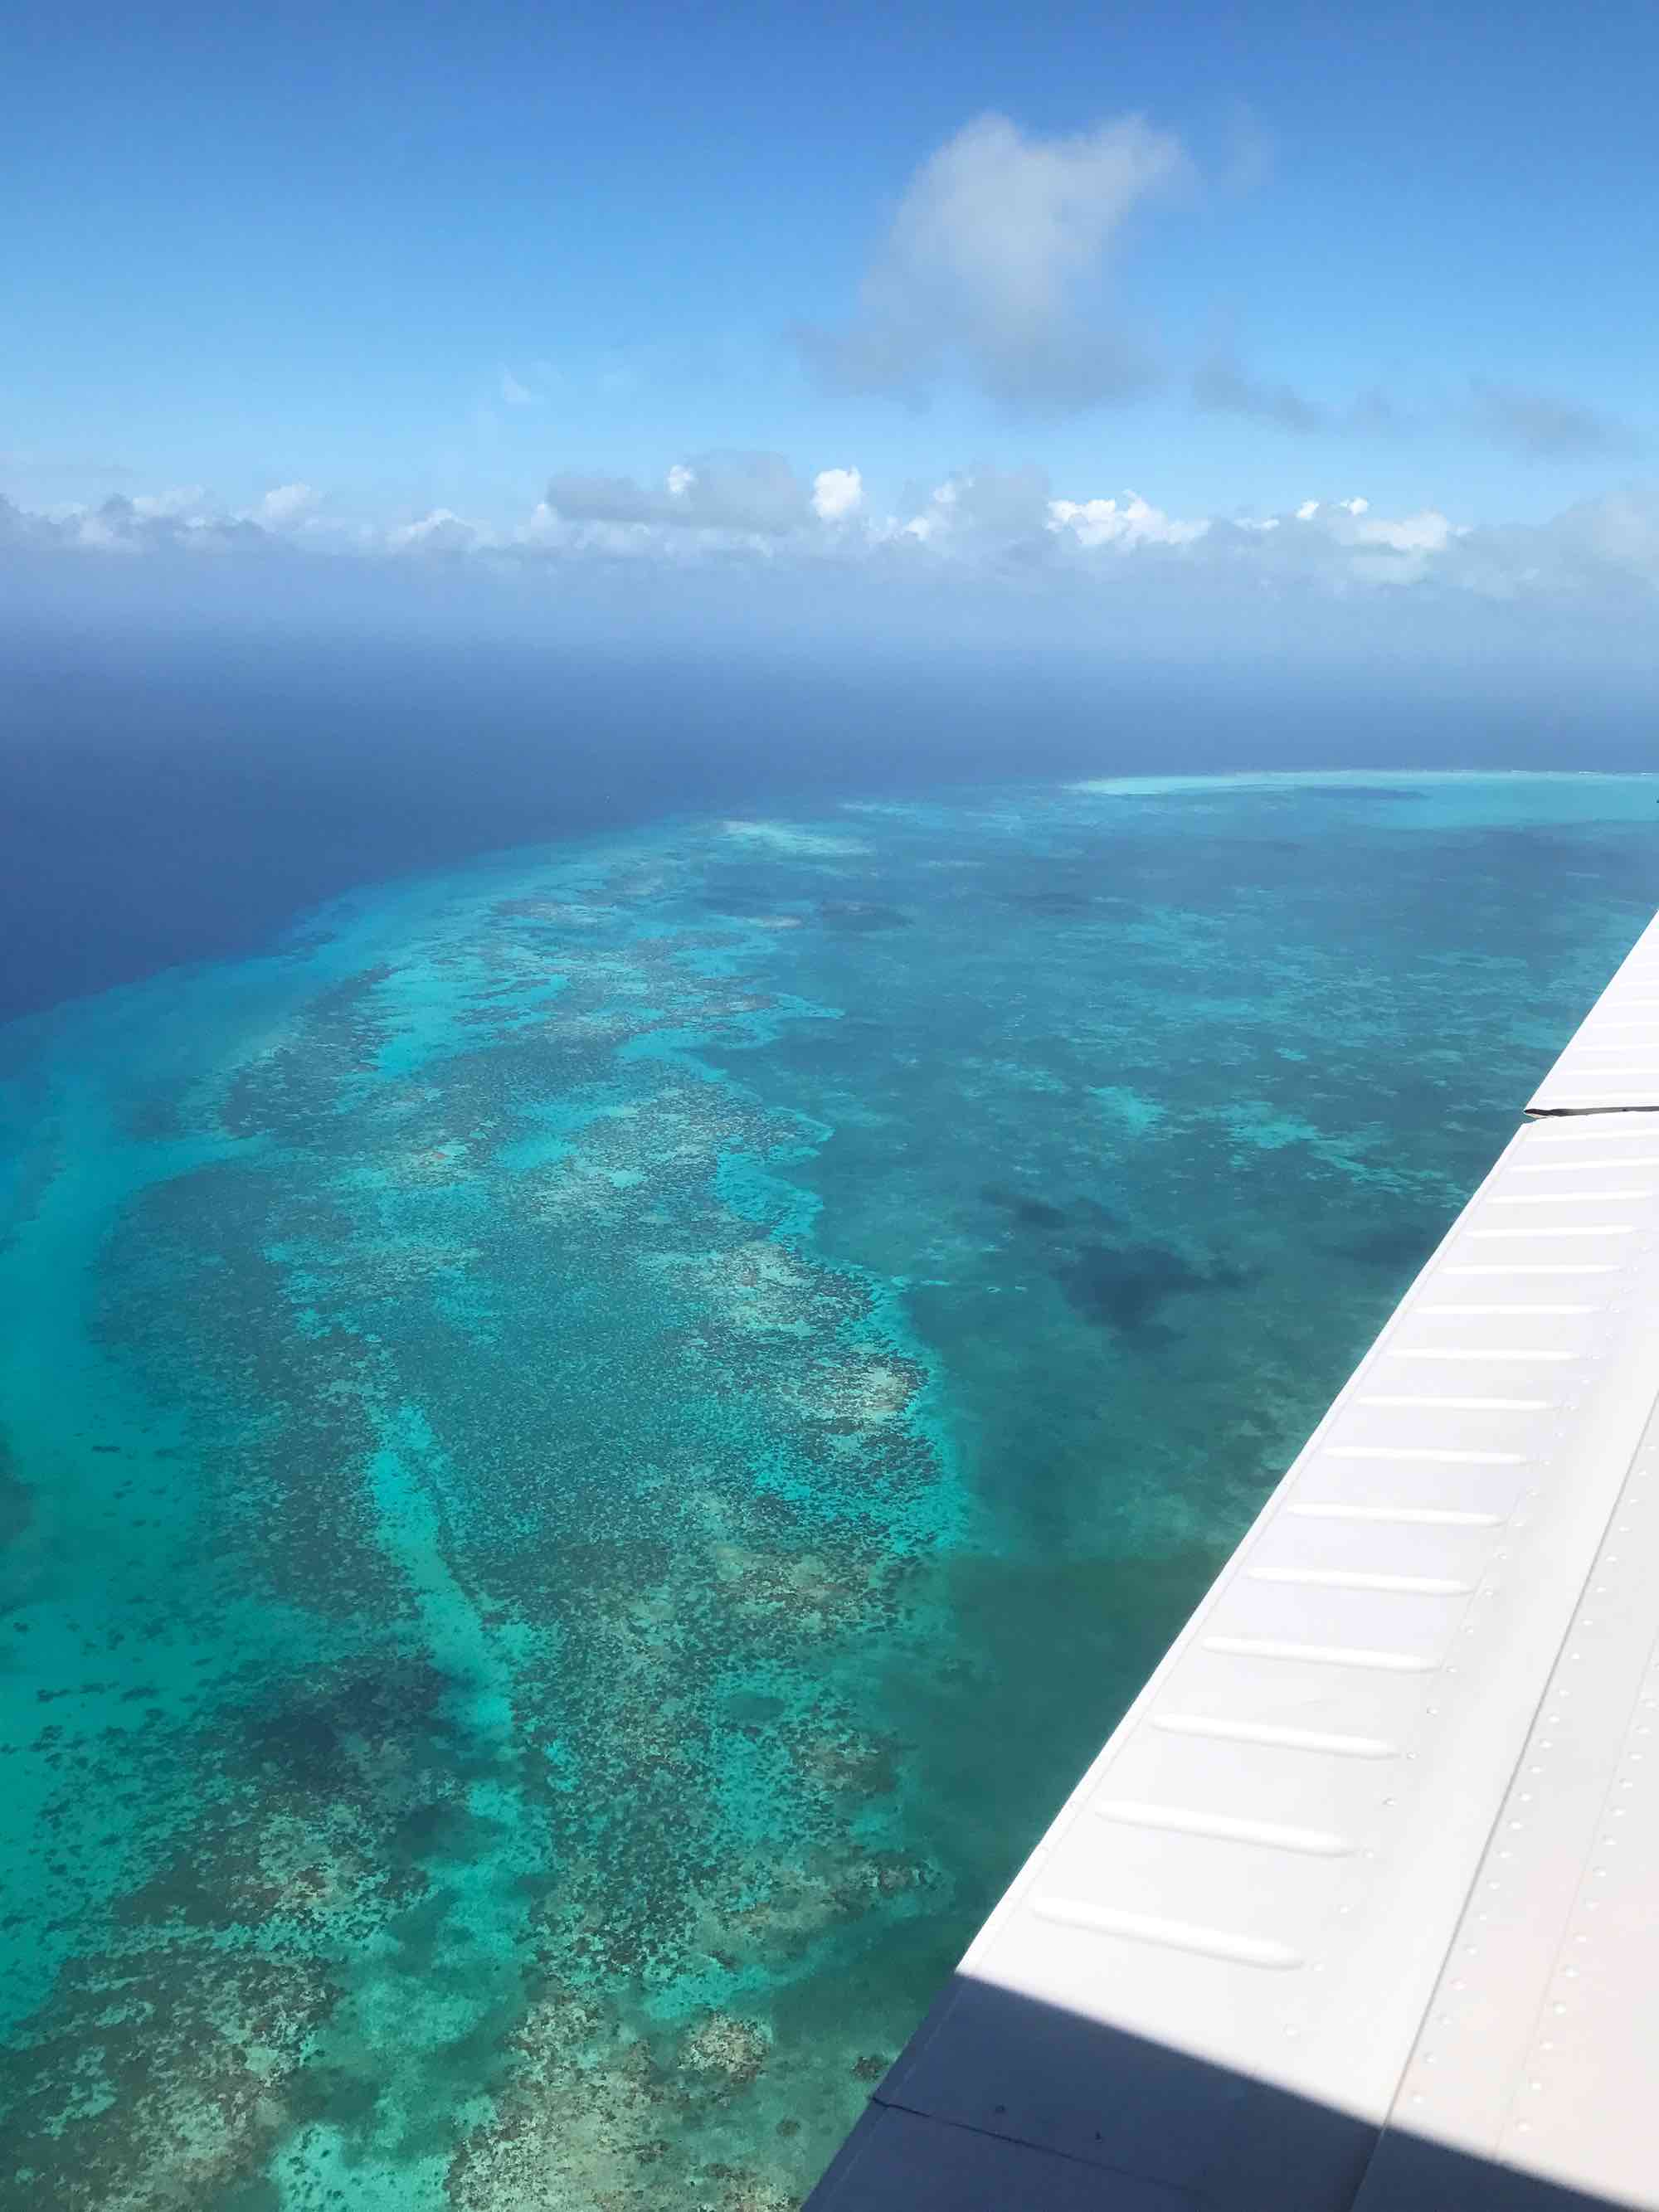 Flying over Belize to the Great Blue Hole